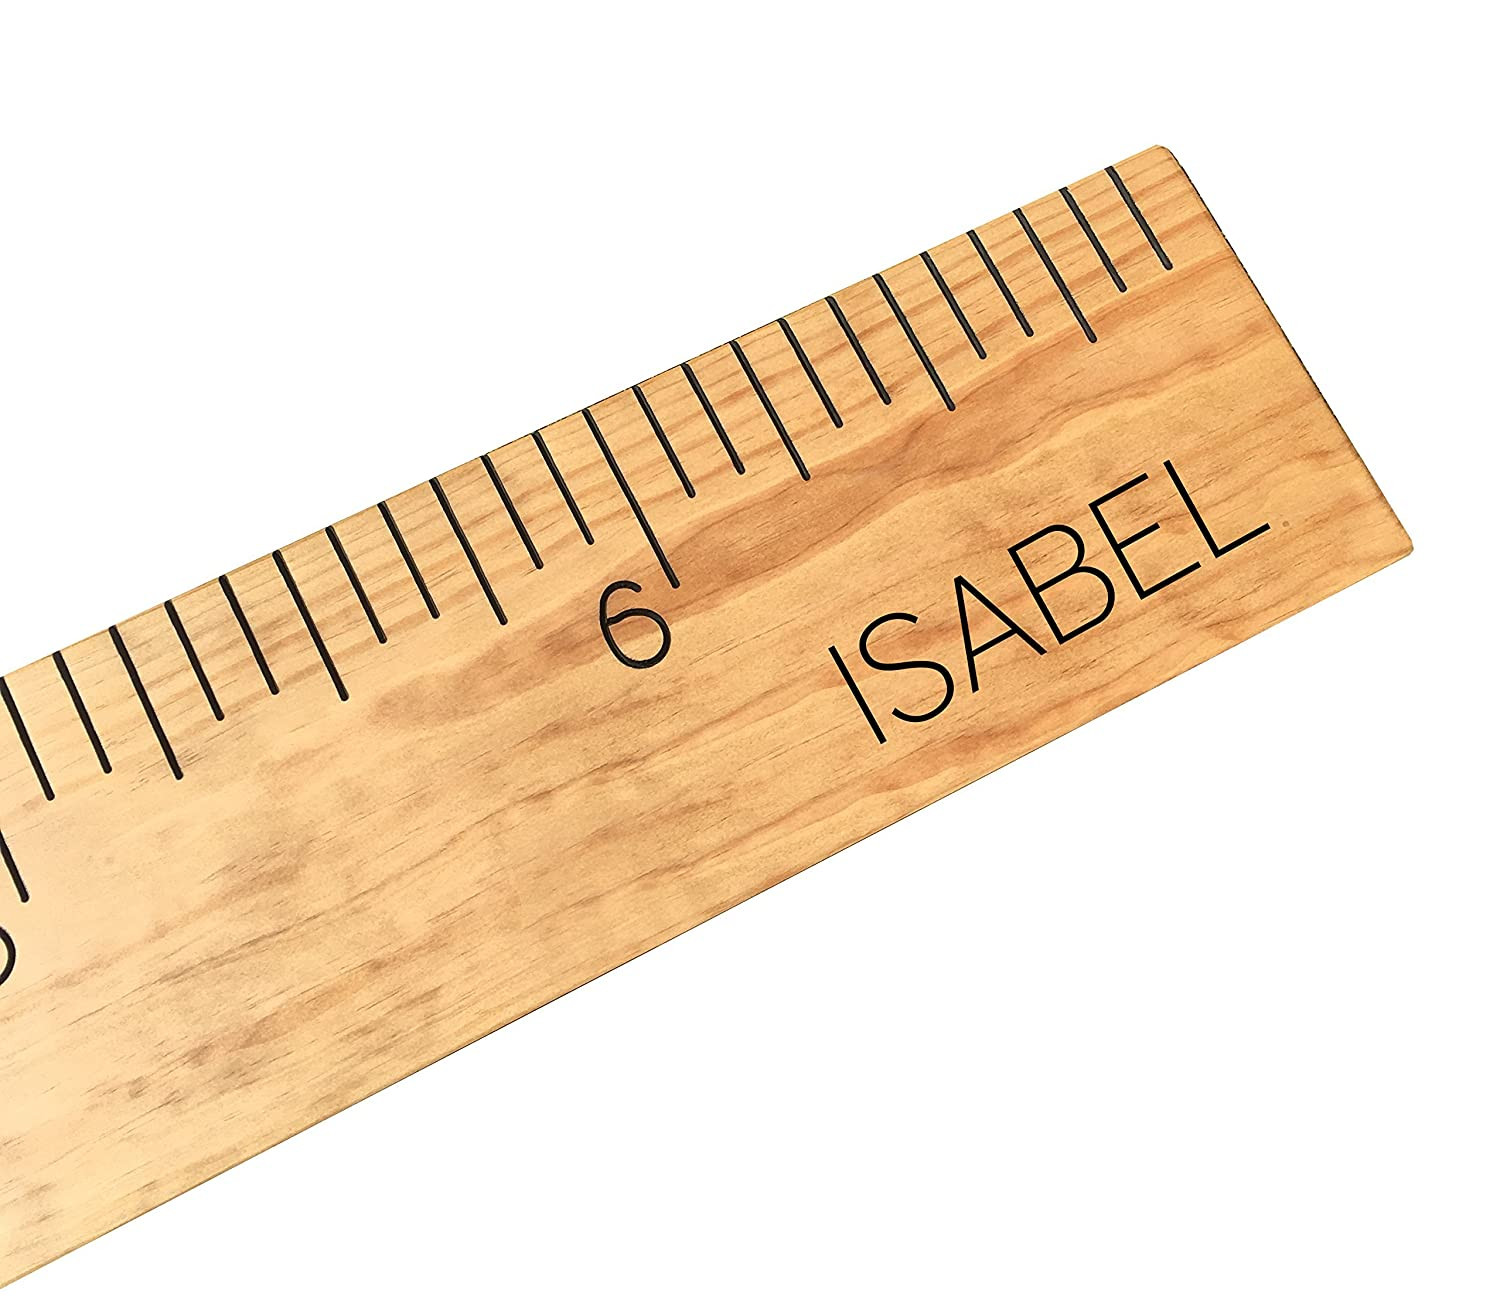 custom growth chart, engraved, personalized wooden ruler, measuring height stick, handmade, routed